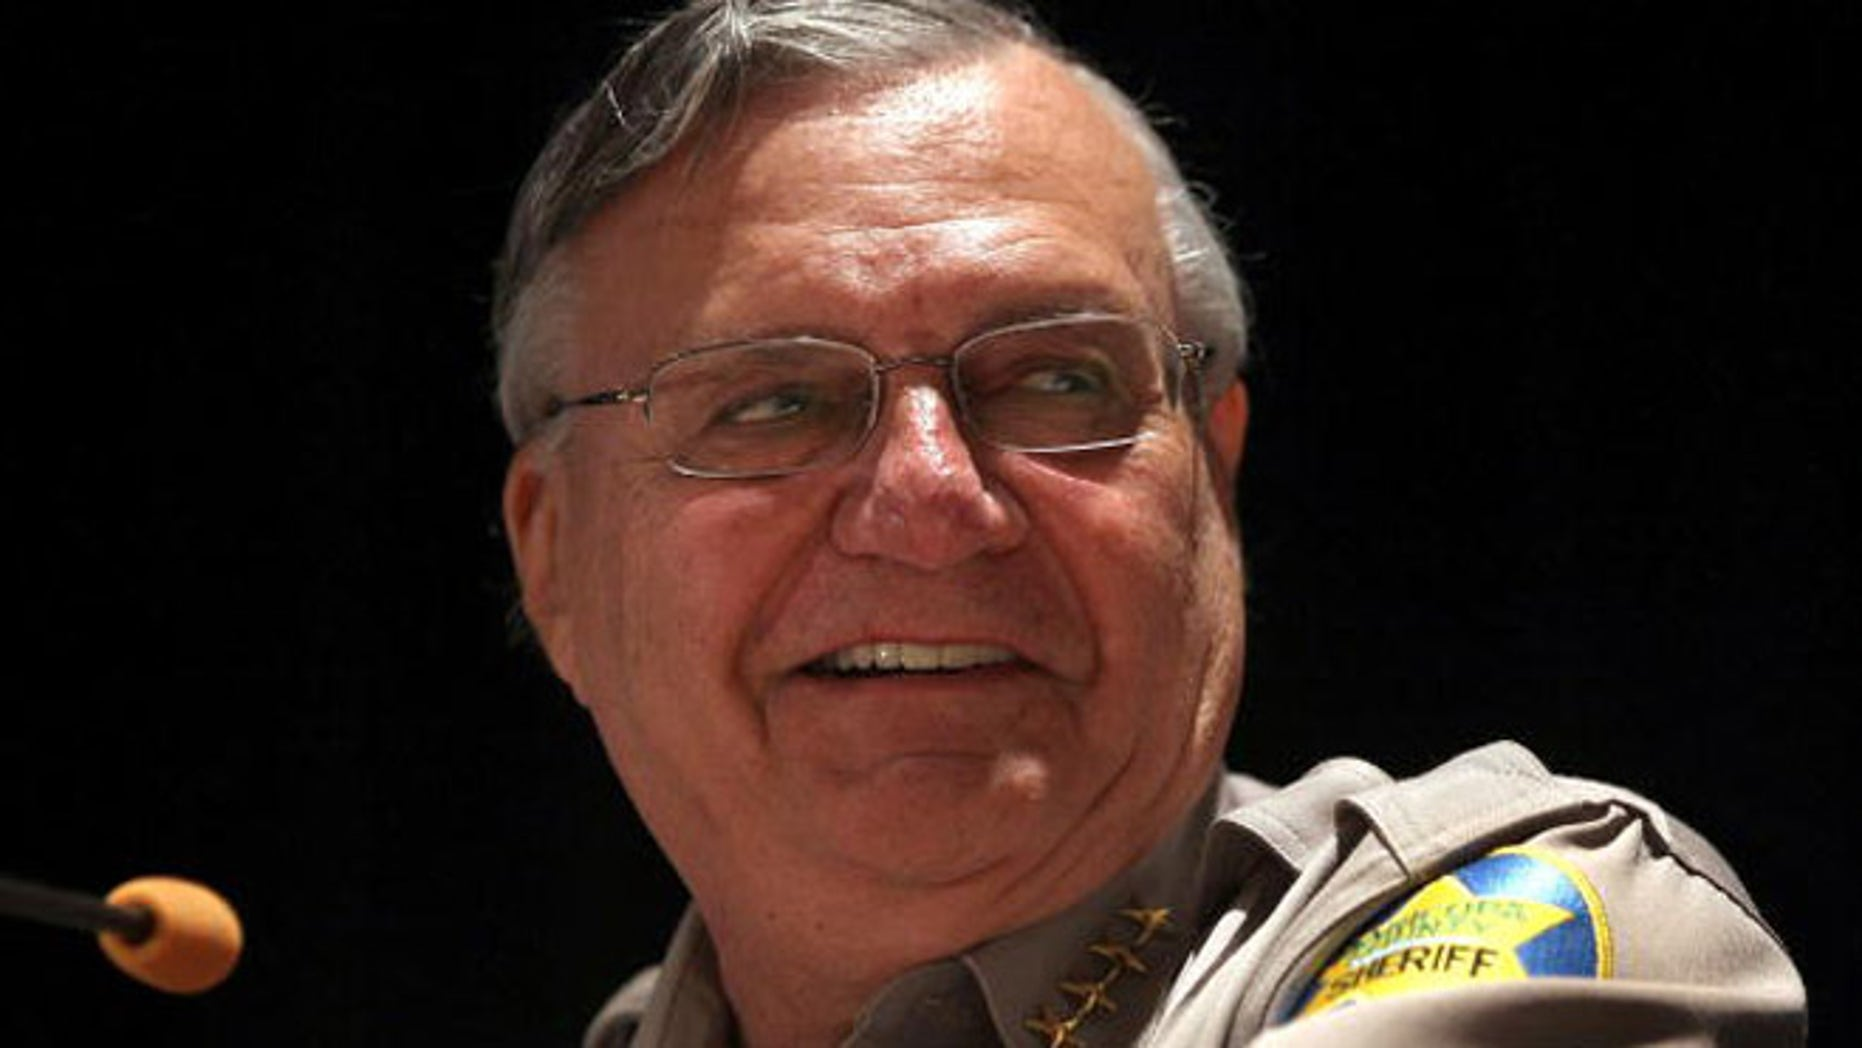 "PHOENIX - APRIL 29:  Maricopa County sheriff Joe Arpaio speaks to participants of the Border Security Expo on April 29, 2010 in Phoenix, Arizona. Arpaio, promoted by his supporters as ""America's Toughest Sheriff"", voiced his support for Arizona's new immigration enforcement law. His deputies conduct frequent sweeps to arrest undocumented immigrants in his county, which includes the state capitol Phoenix.  (Photo by John Moore/Getty Images)"